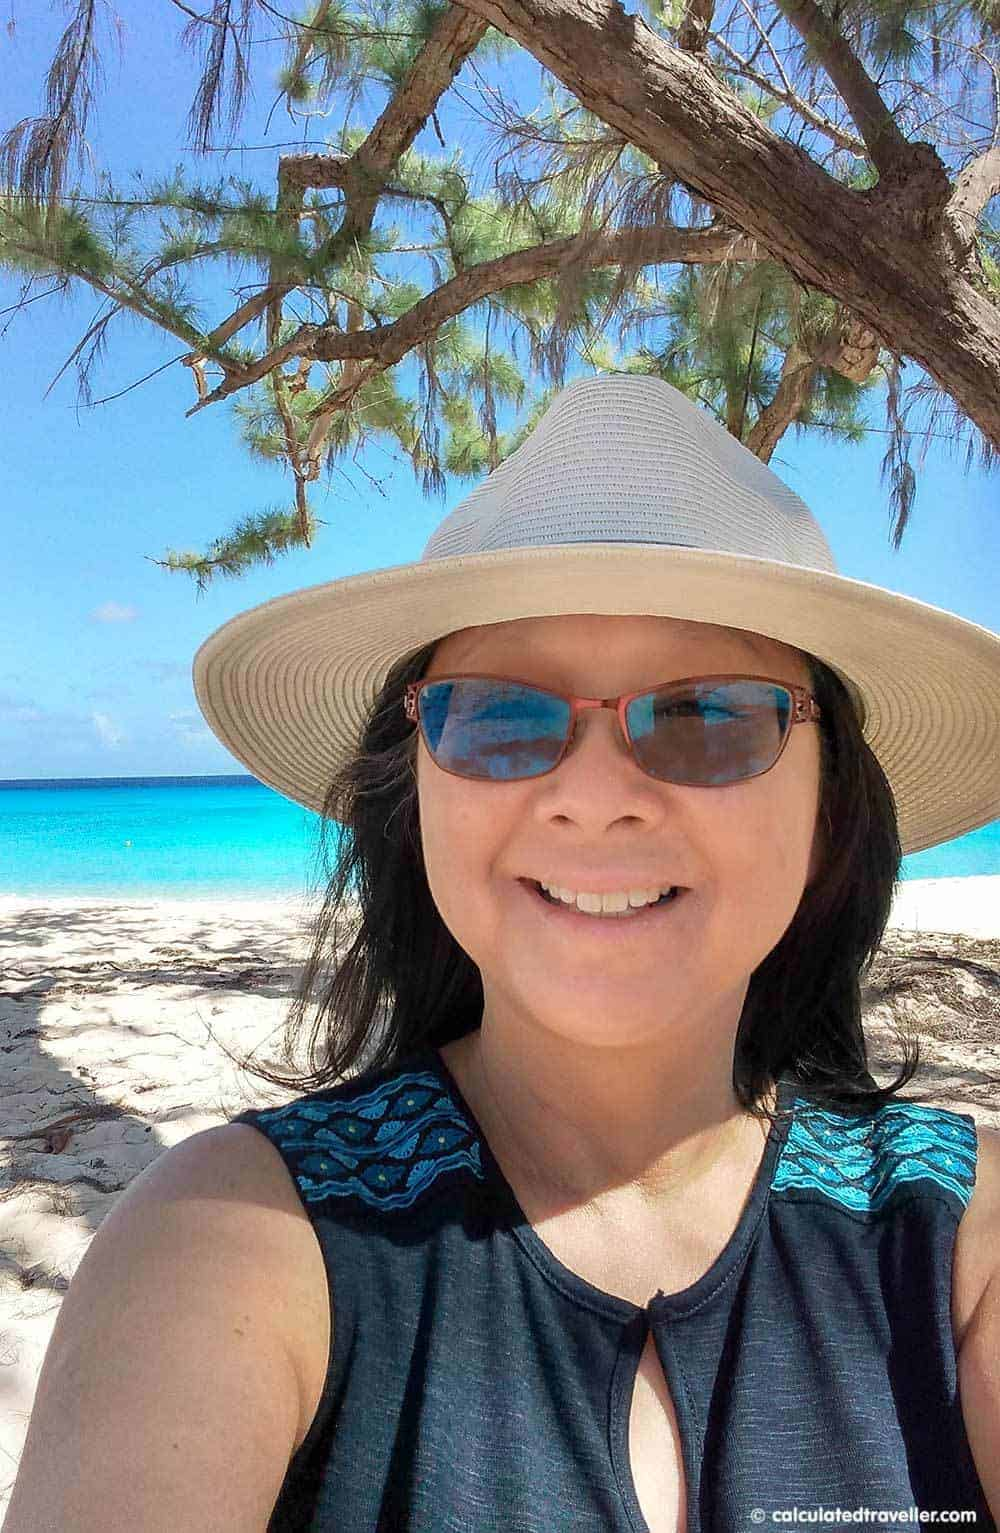 63d1e71cfc4b2 Stylish Sun Protection with the Sunday Afternoons Havana Hat Review by  Calculated Traveller